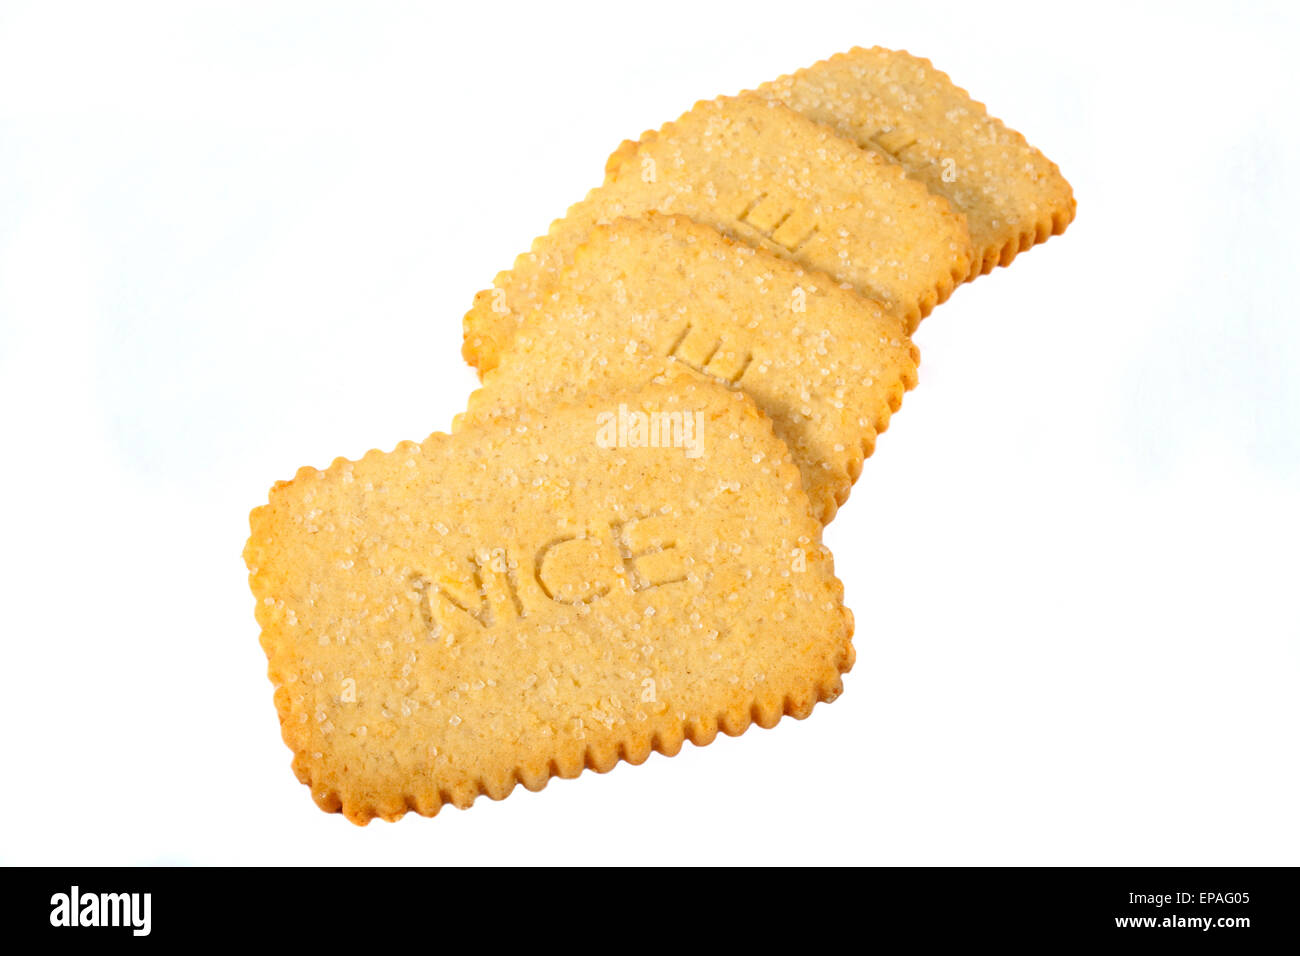 Nice Biscuits over a white background. - Stock Image